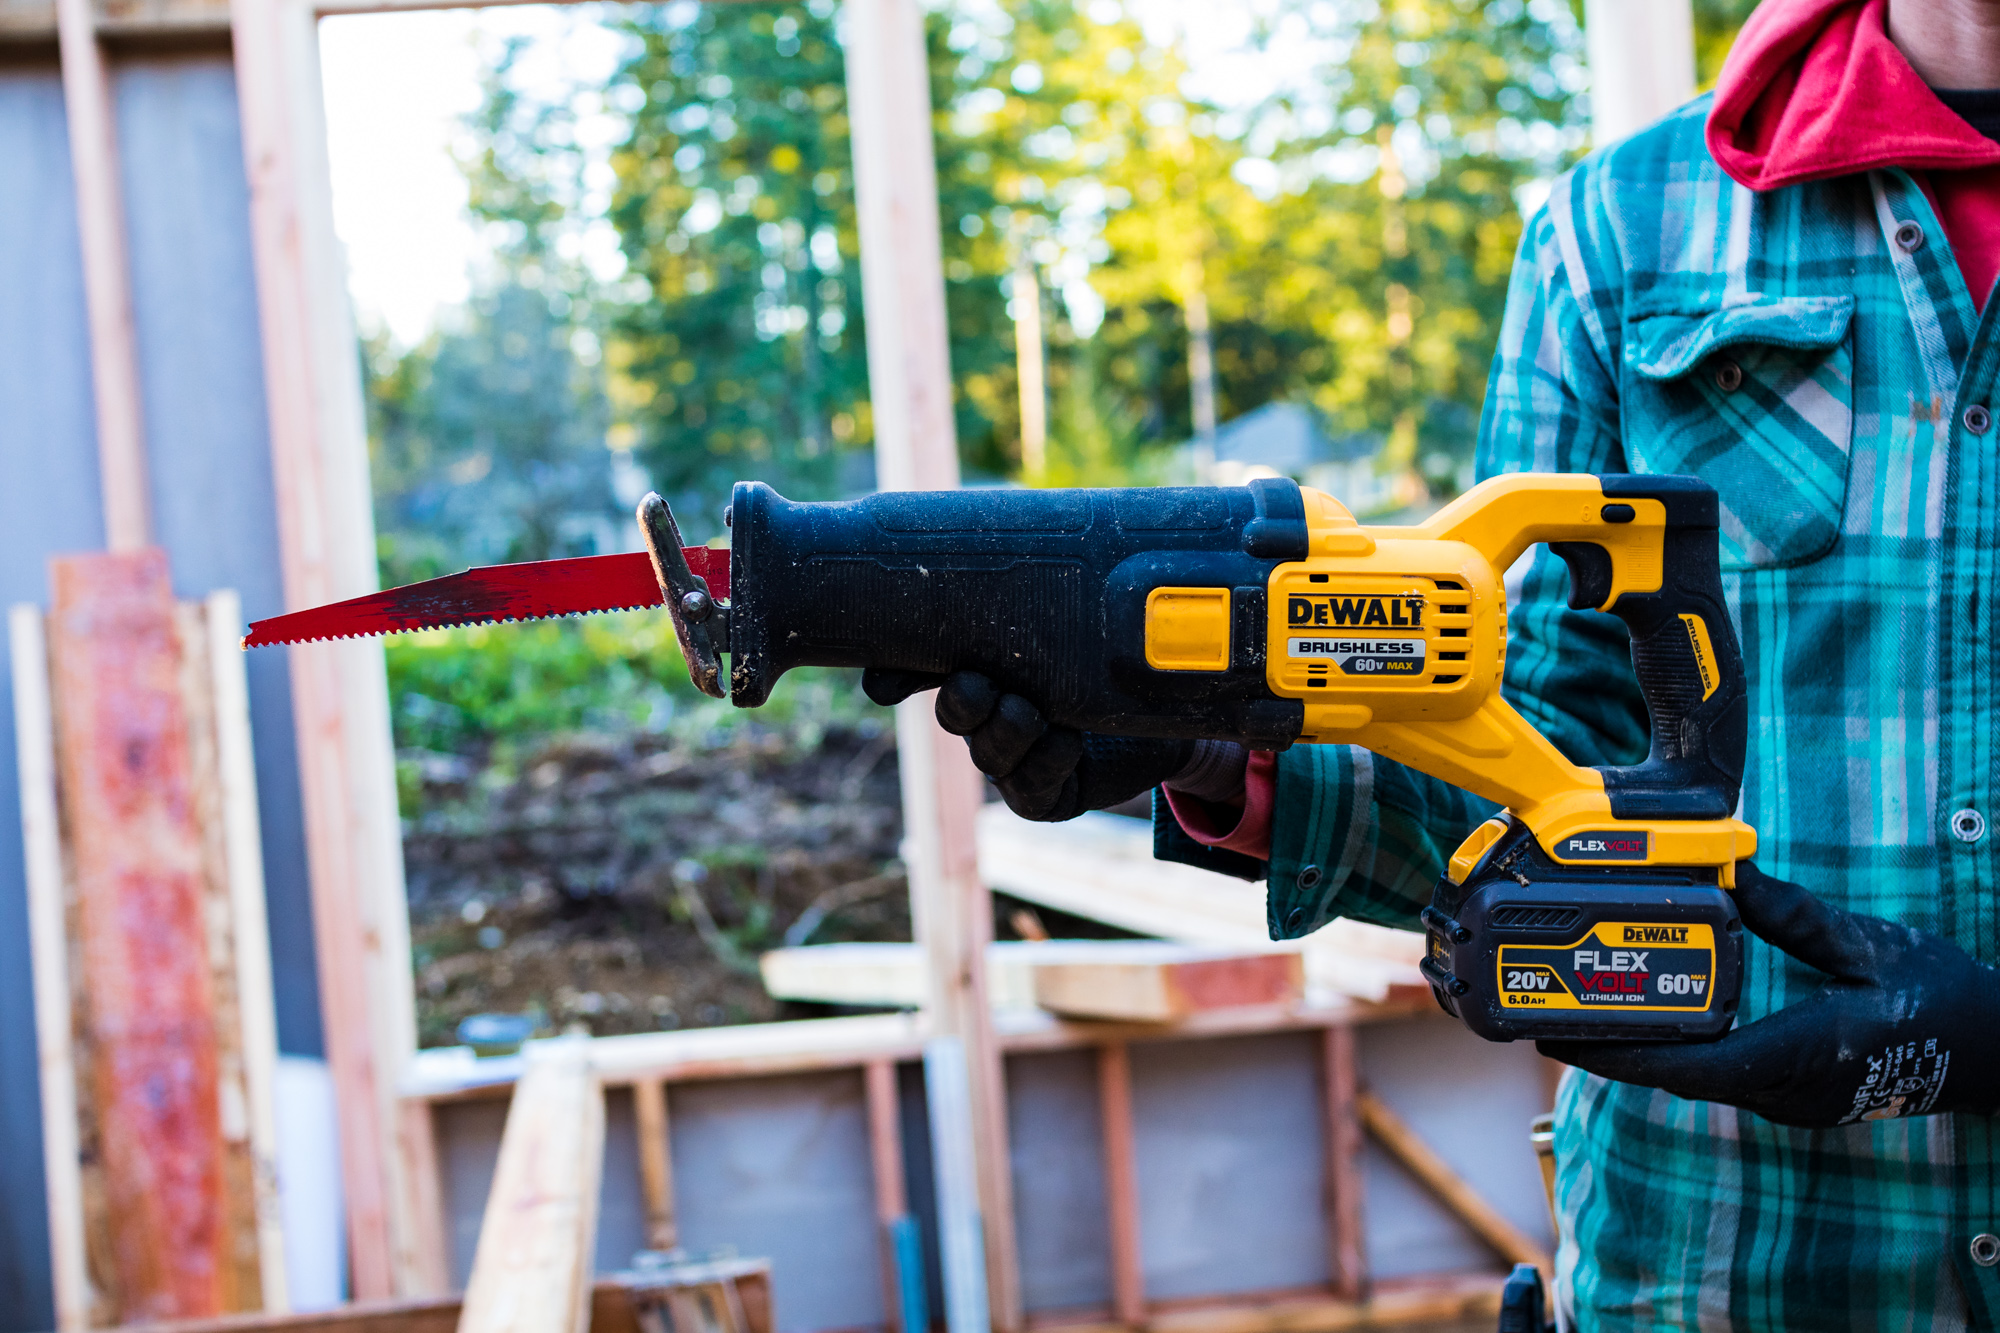 Dewalt cordless flexvolt recip saw tools of the trade cordless dewalt cordless flexvolt recip saw tools of the trade cordless tools saws tool tests dewalt greentooth Image collections